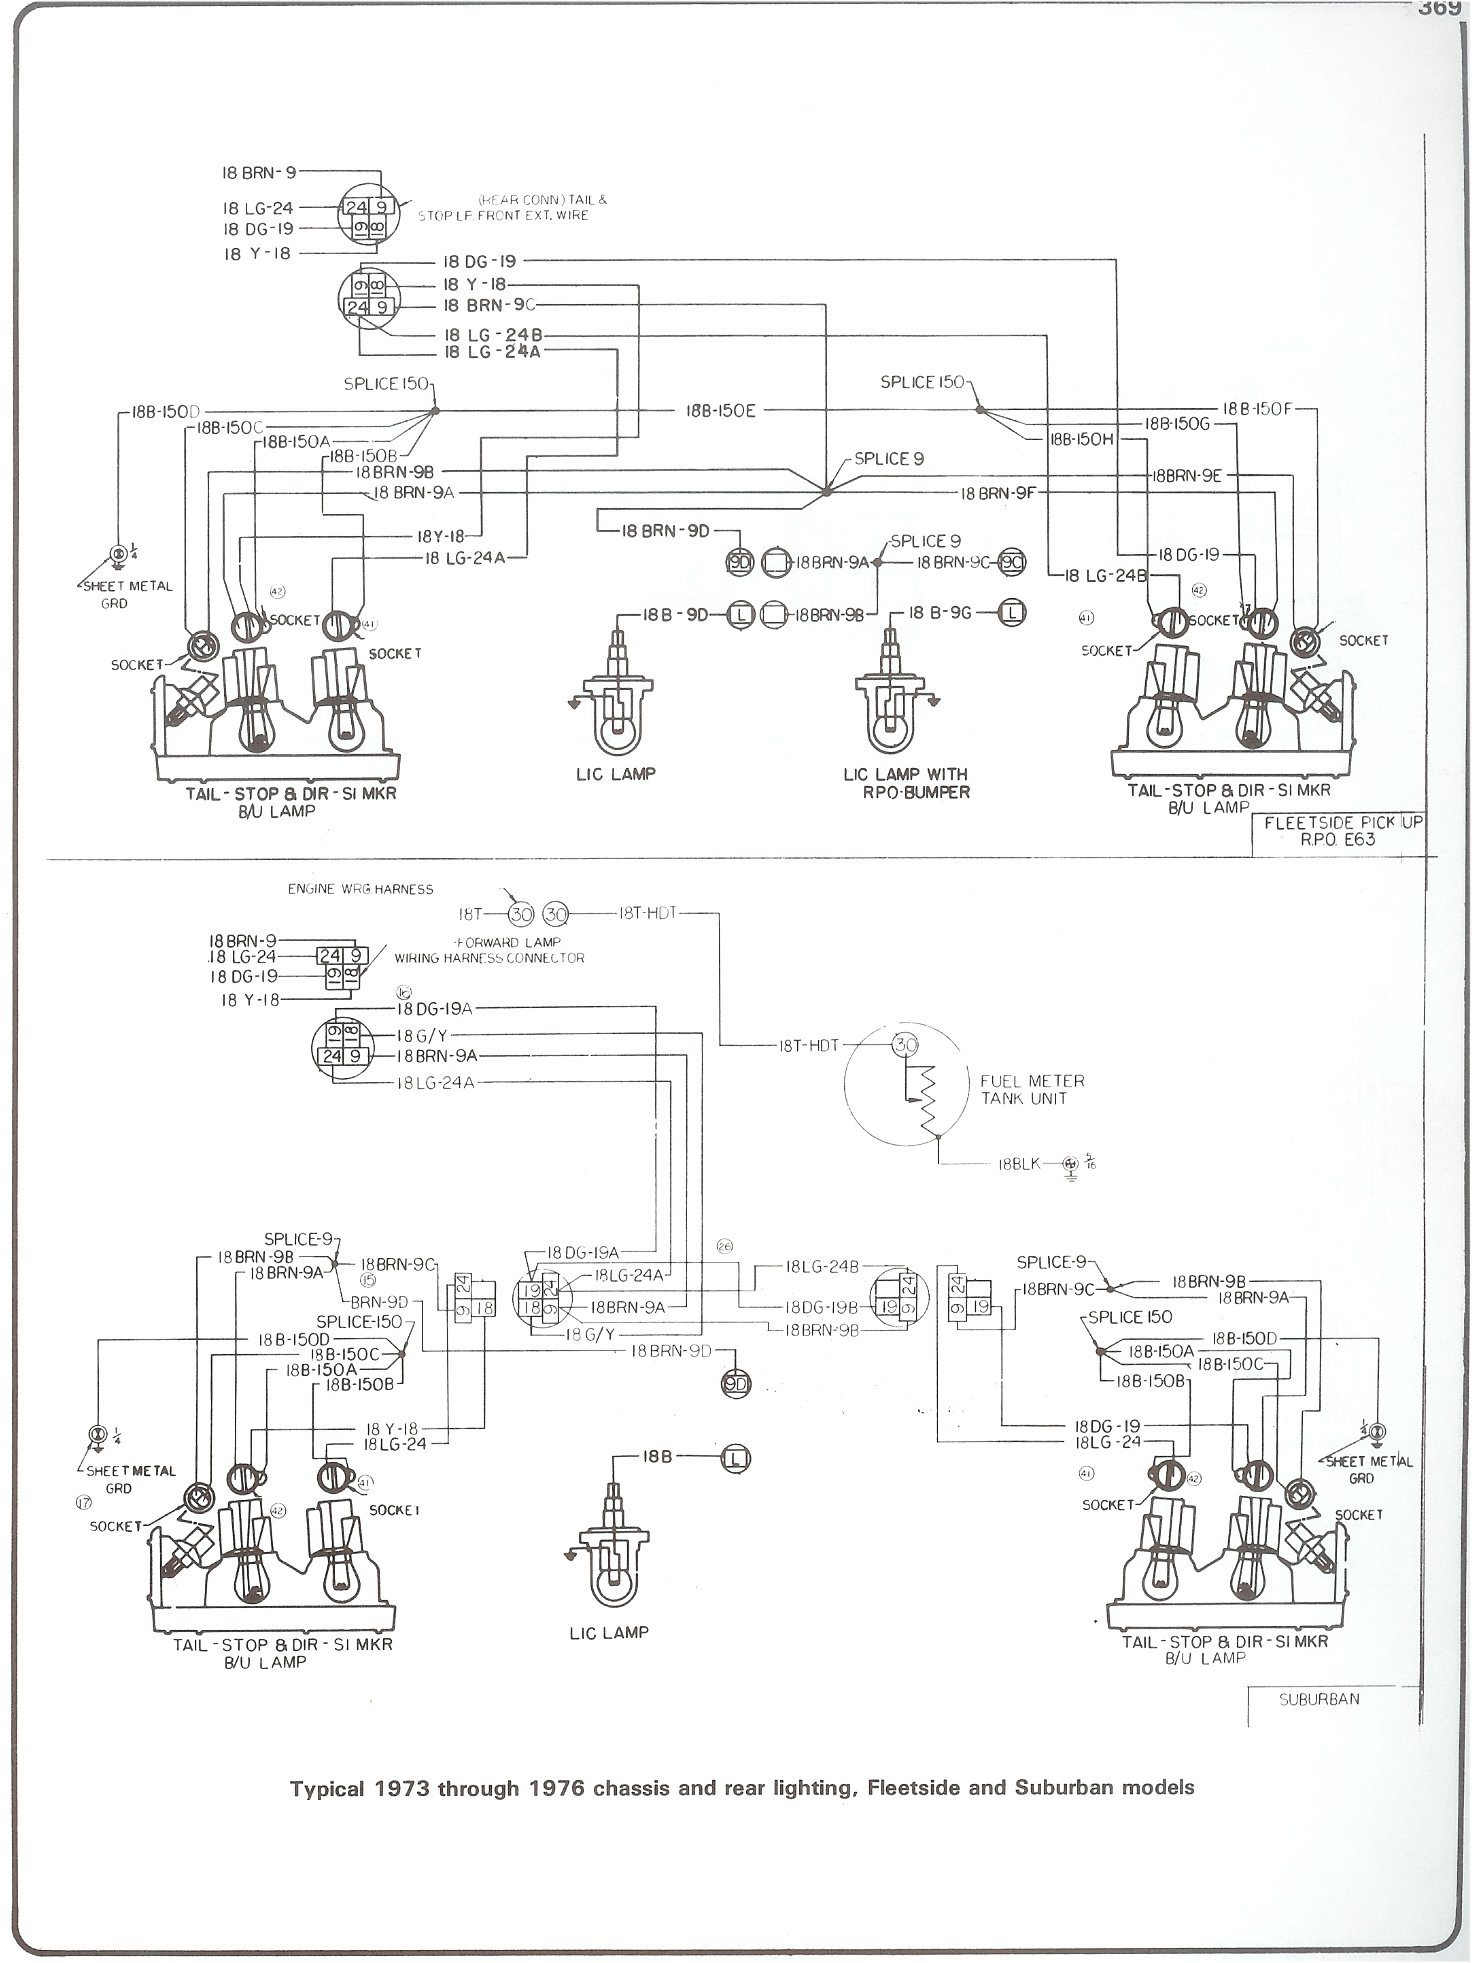 complete 73 87 wiring diagrams wiring diagram 86 chevy suburban 73 76 chassis rear lighting (fleetside and suburban